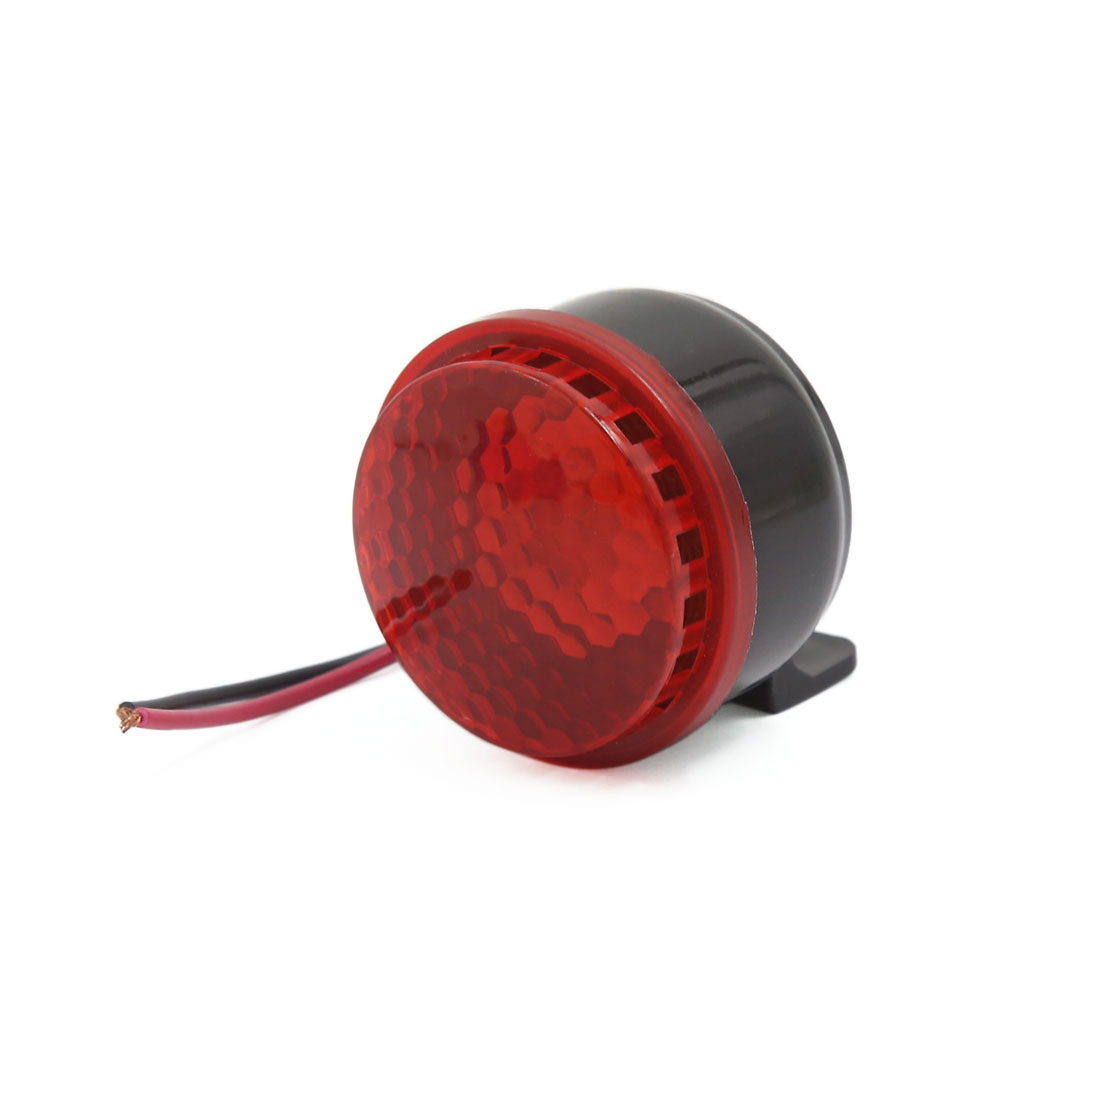 DC 12V Red LED Light 6 Tones Car Motorcycle Brakes Horn 105 db